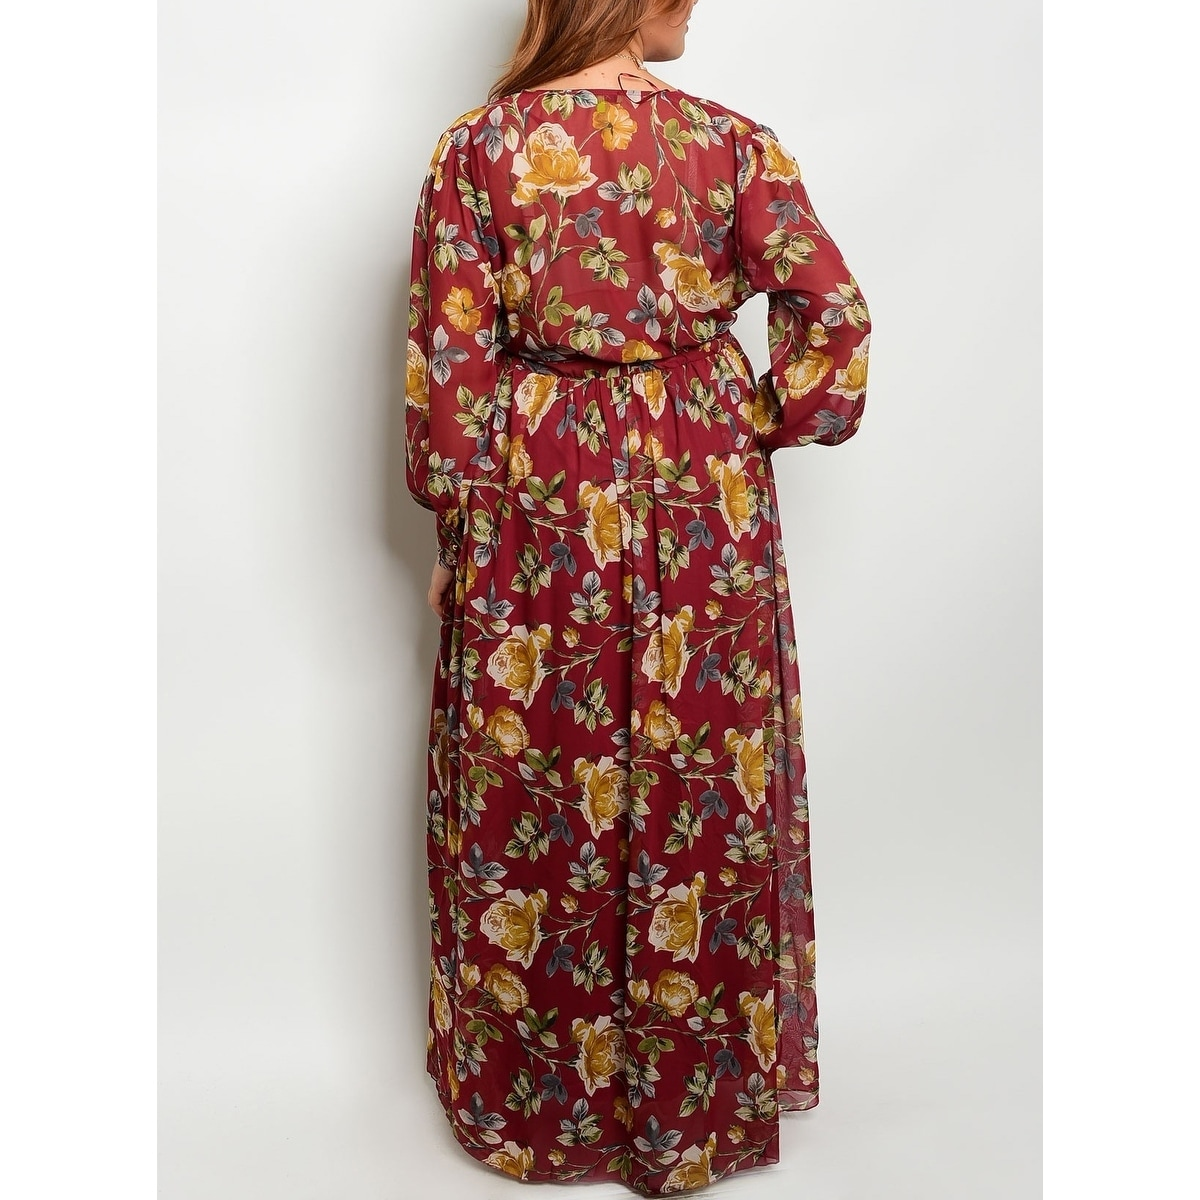 c369c12742f0 Shop JED Women's Plus Size Floral Long Sleeve Maxi Dress - Free Shipping On  Orders Over $45 - Overstock - 20478929